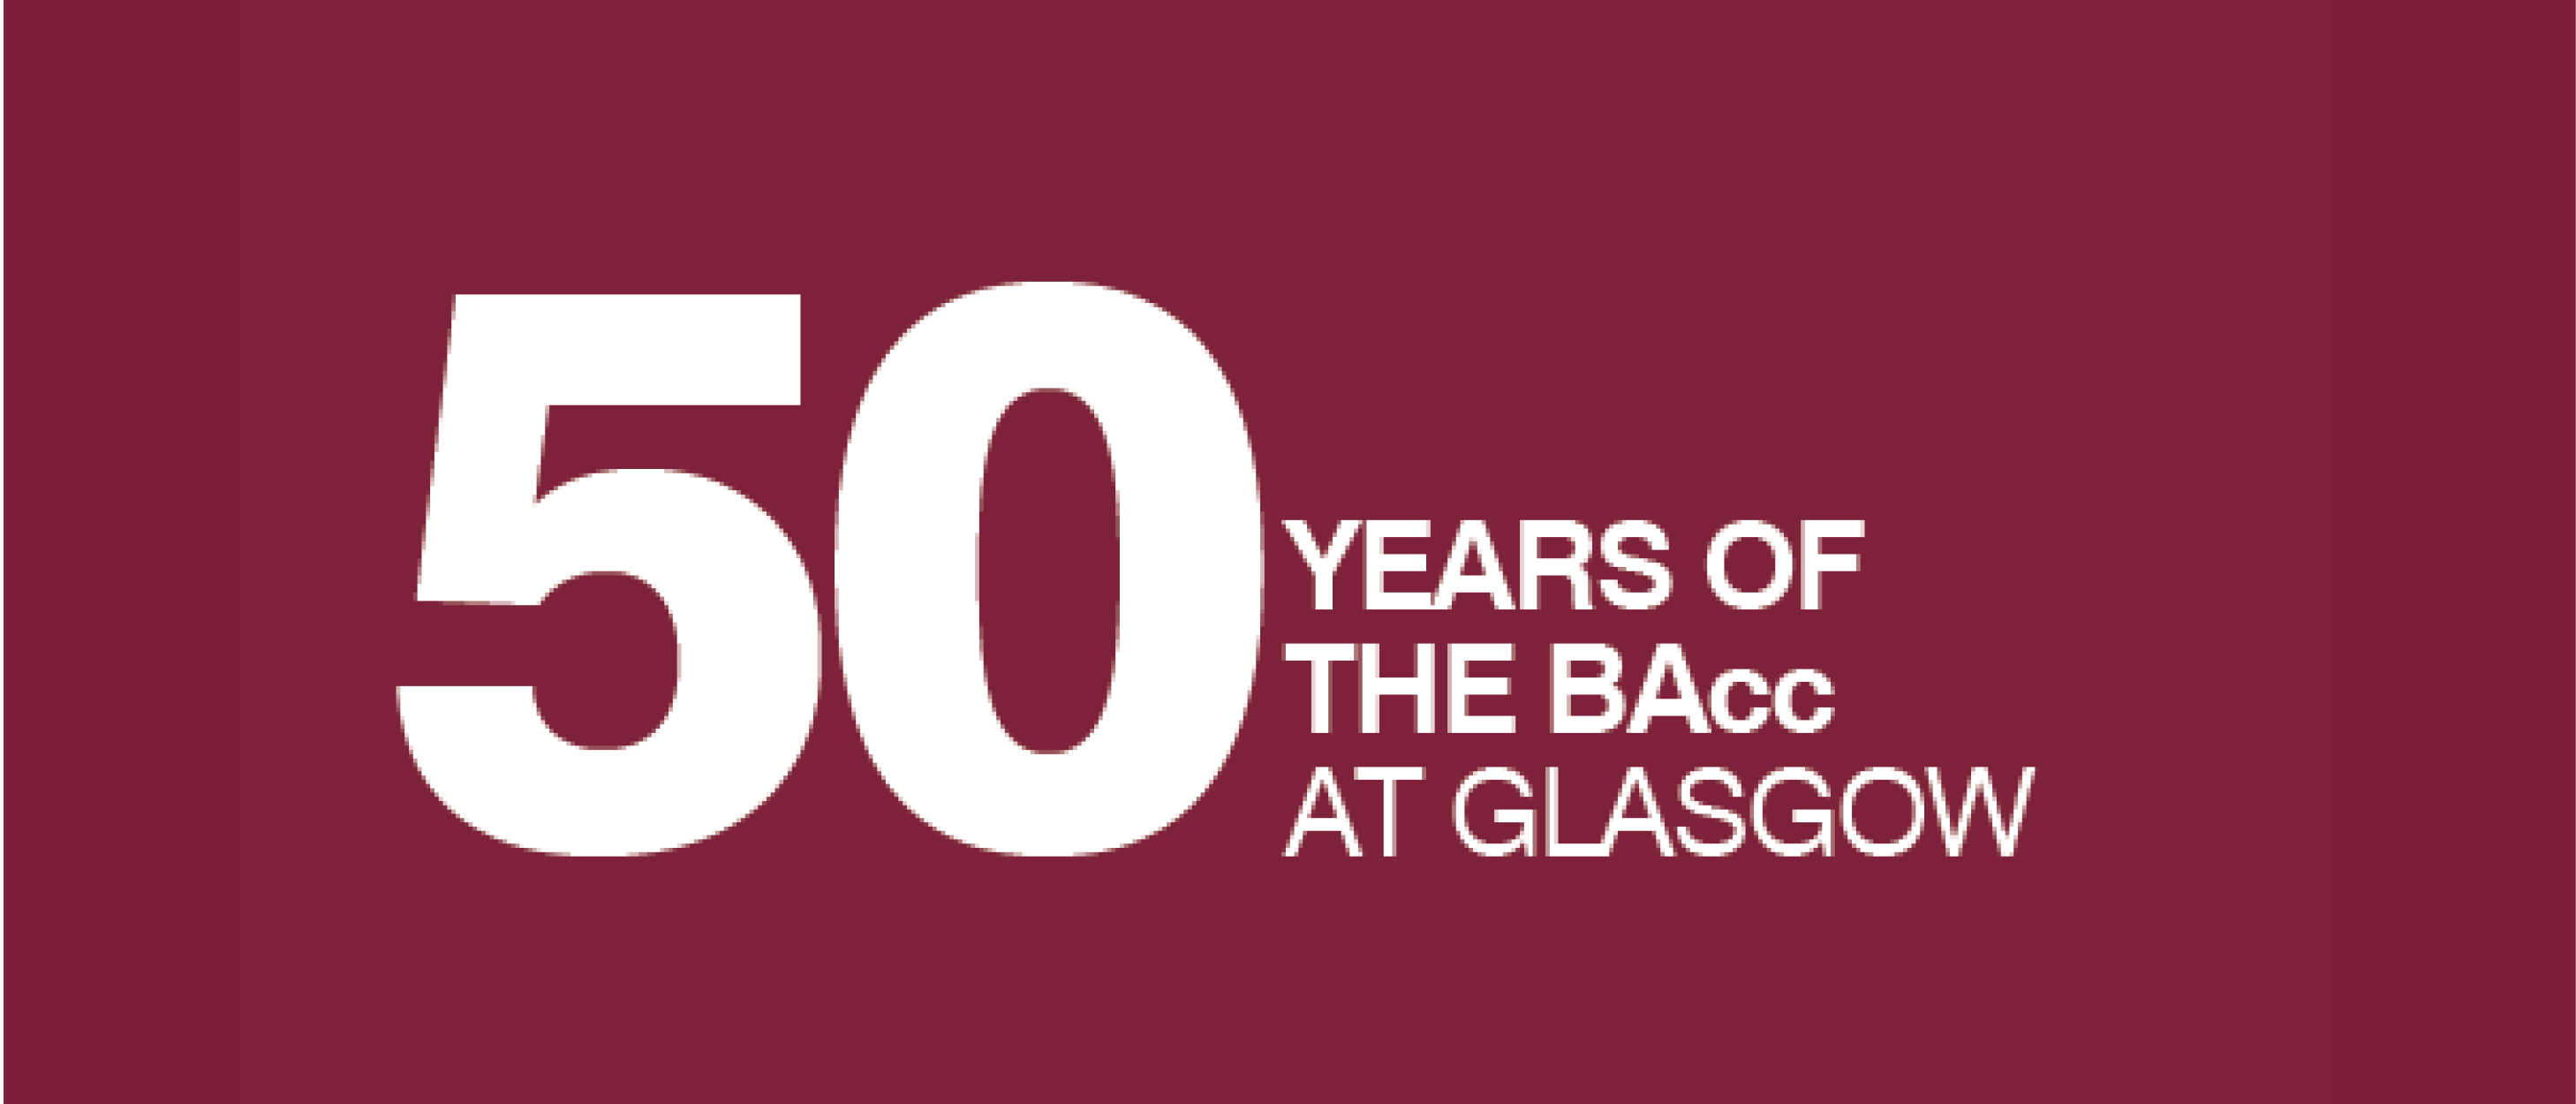 BAcc 50 celebration logo